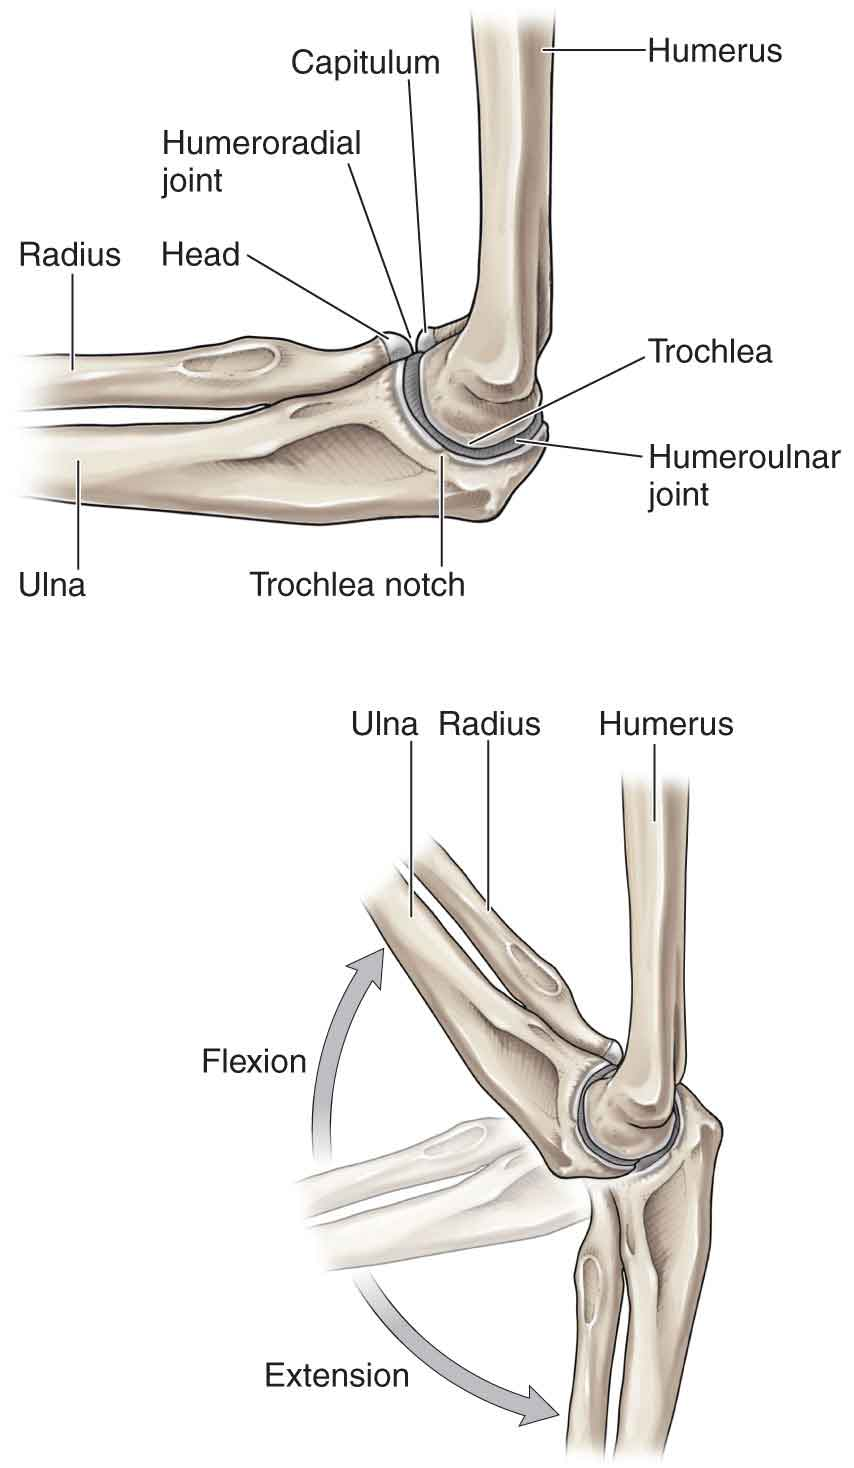 hight resolution of figure 17 1 the bony structures of the elbow complex reproduced with permission from chapter 31 arm in morton da foreman k albertine kh eds